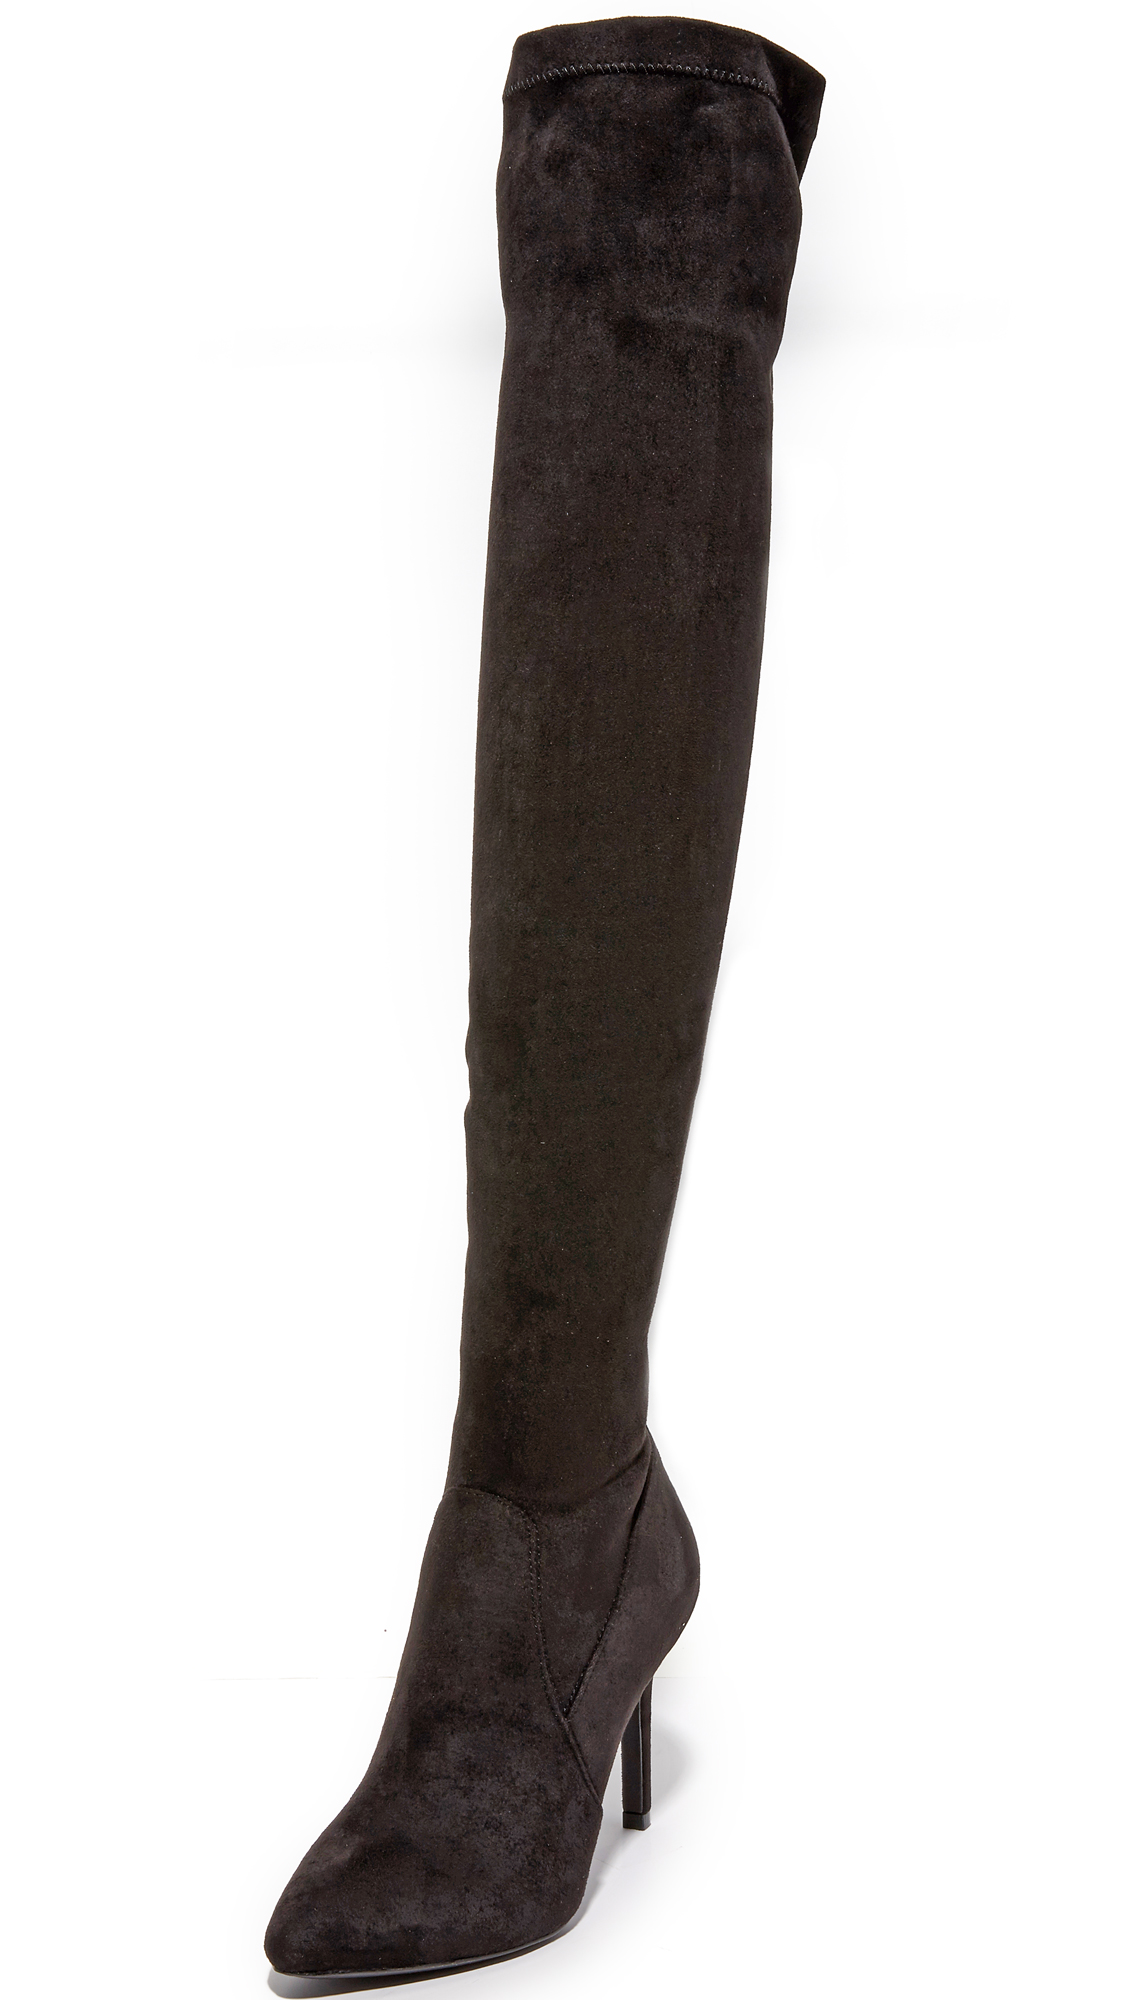 Joie Jemina B Over The Knee Boots - Black